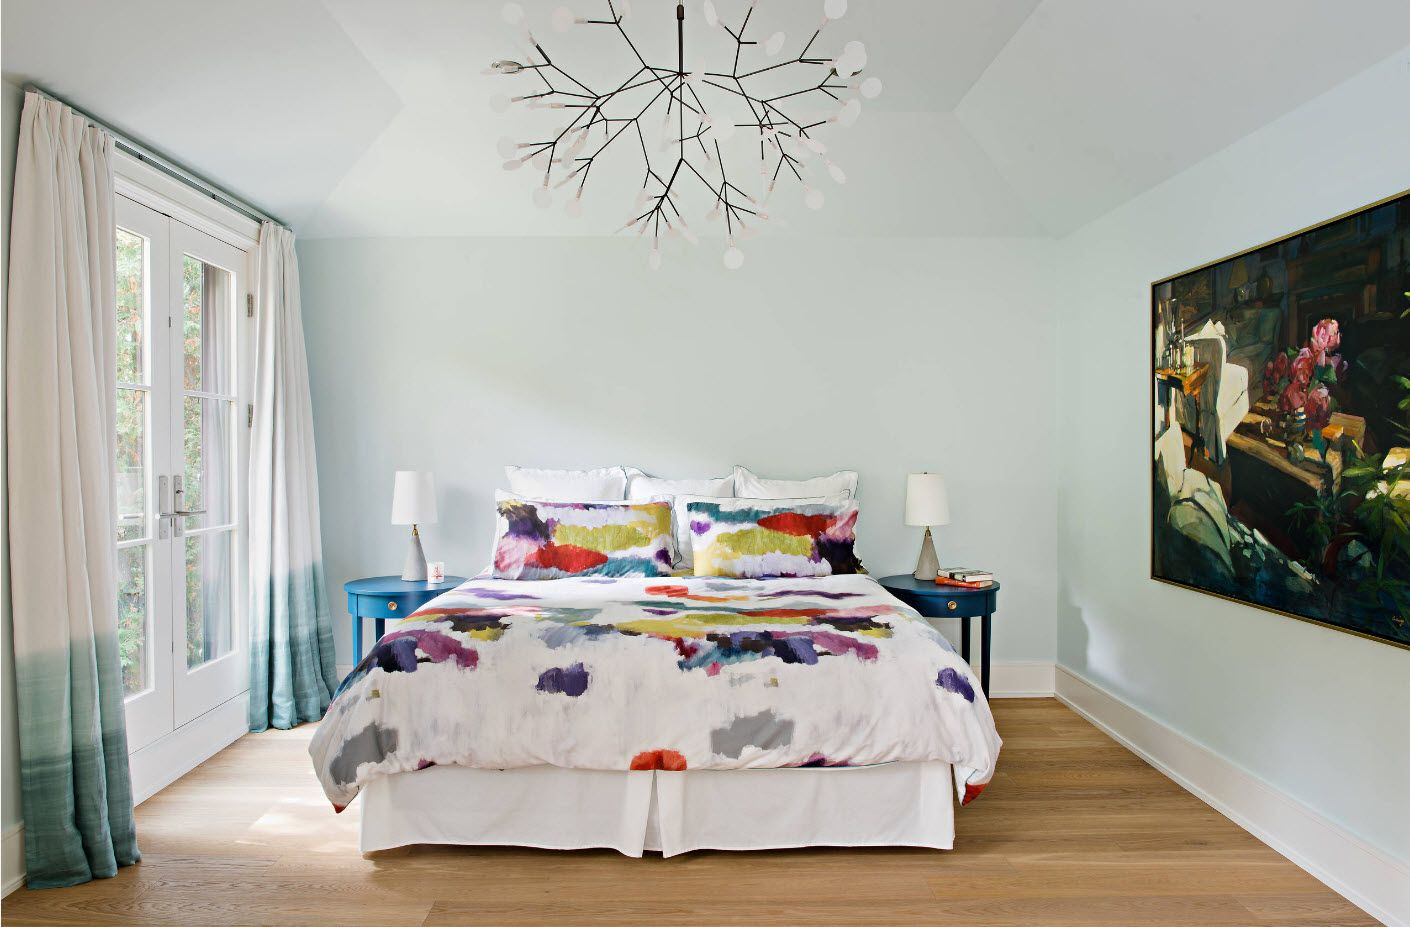 unique chandelier design with right stained coverlet at the bed